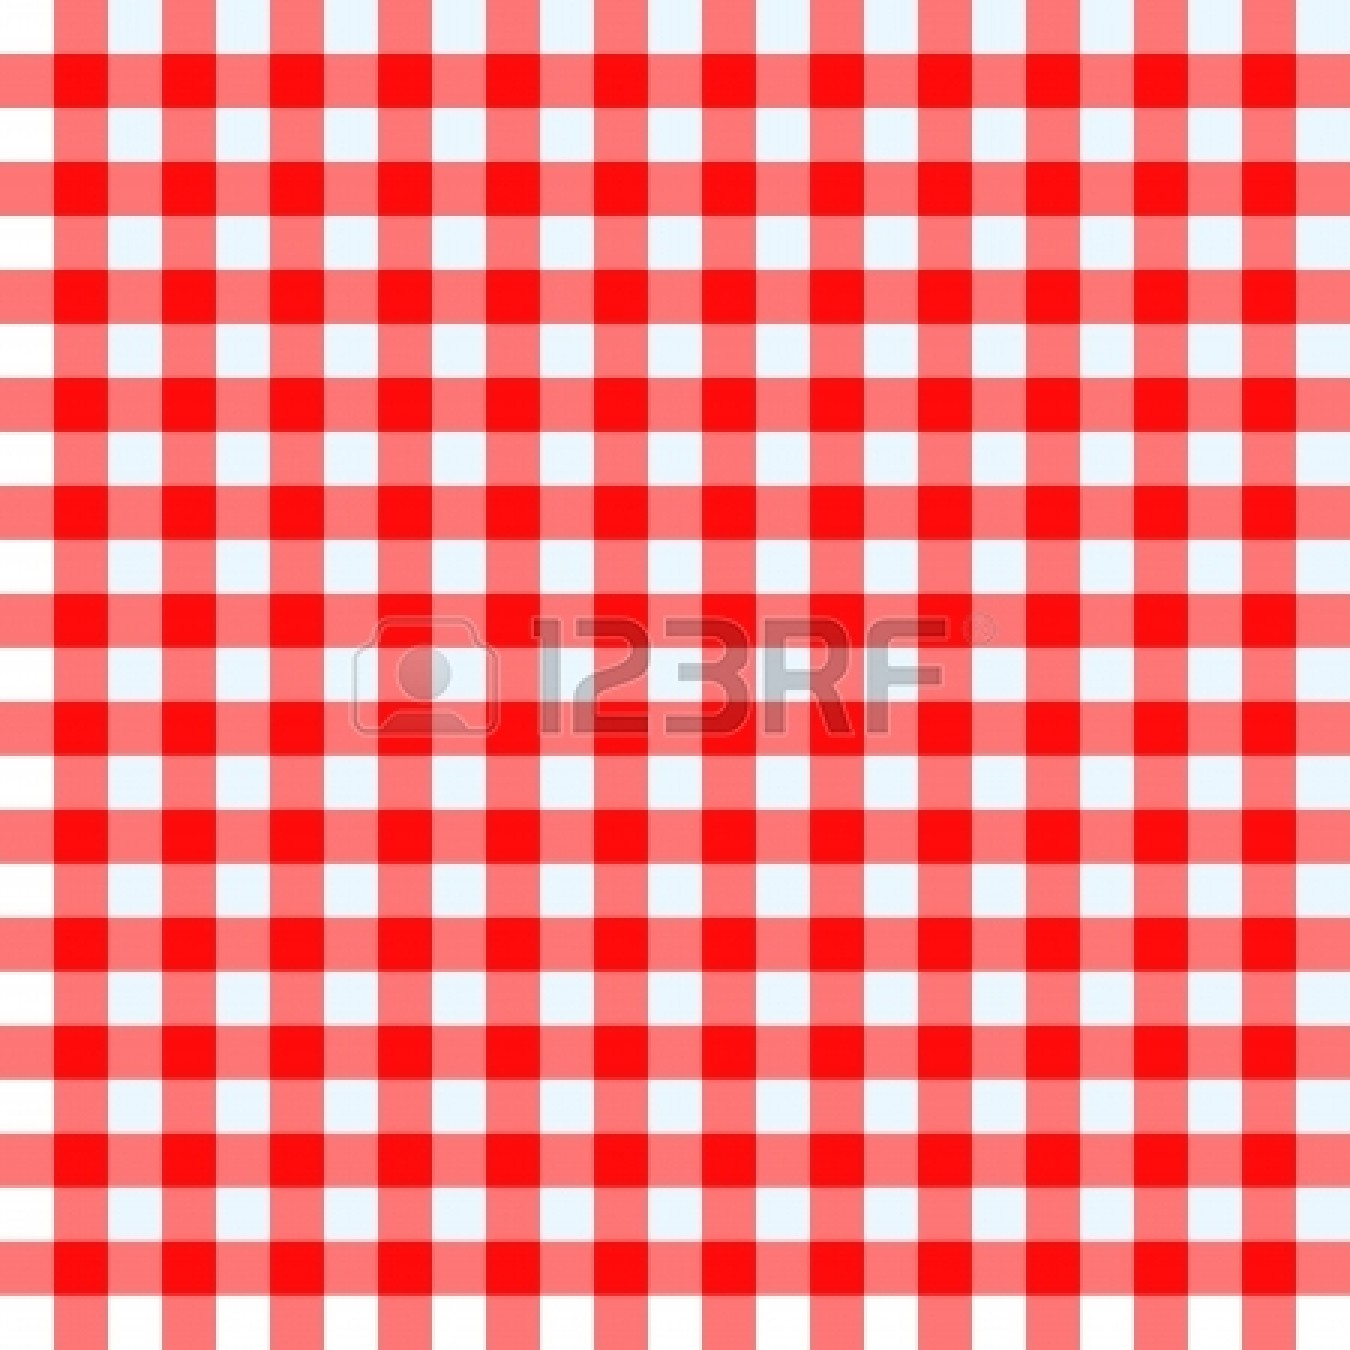 Picnic Blanket Clipart - table grass book read lawn reading summer vacation  food spring green relax park …   Healthy picnic foods, Healthy picnic,  Romantic blanket